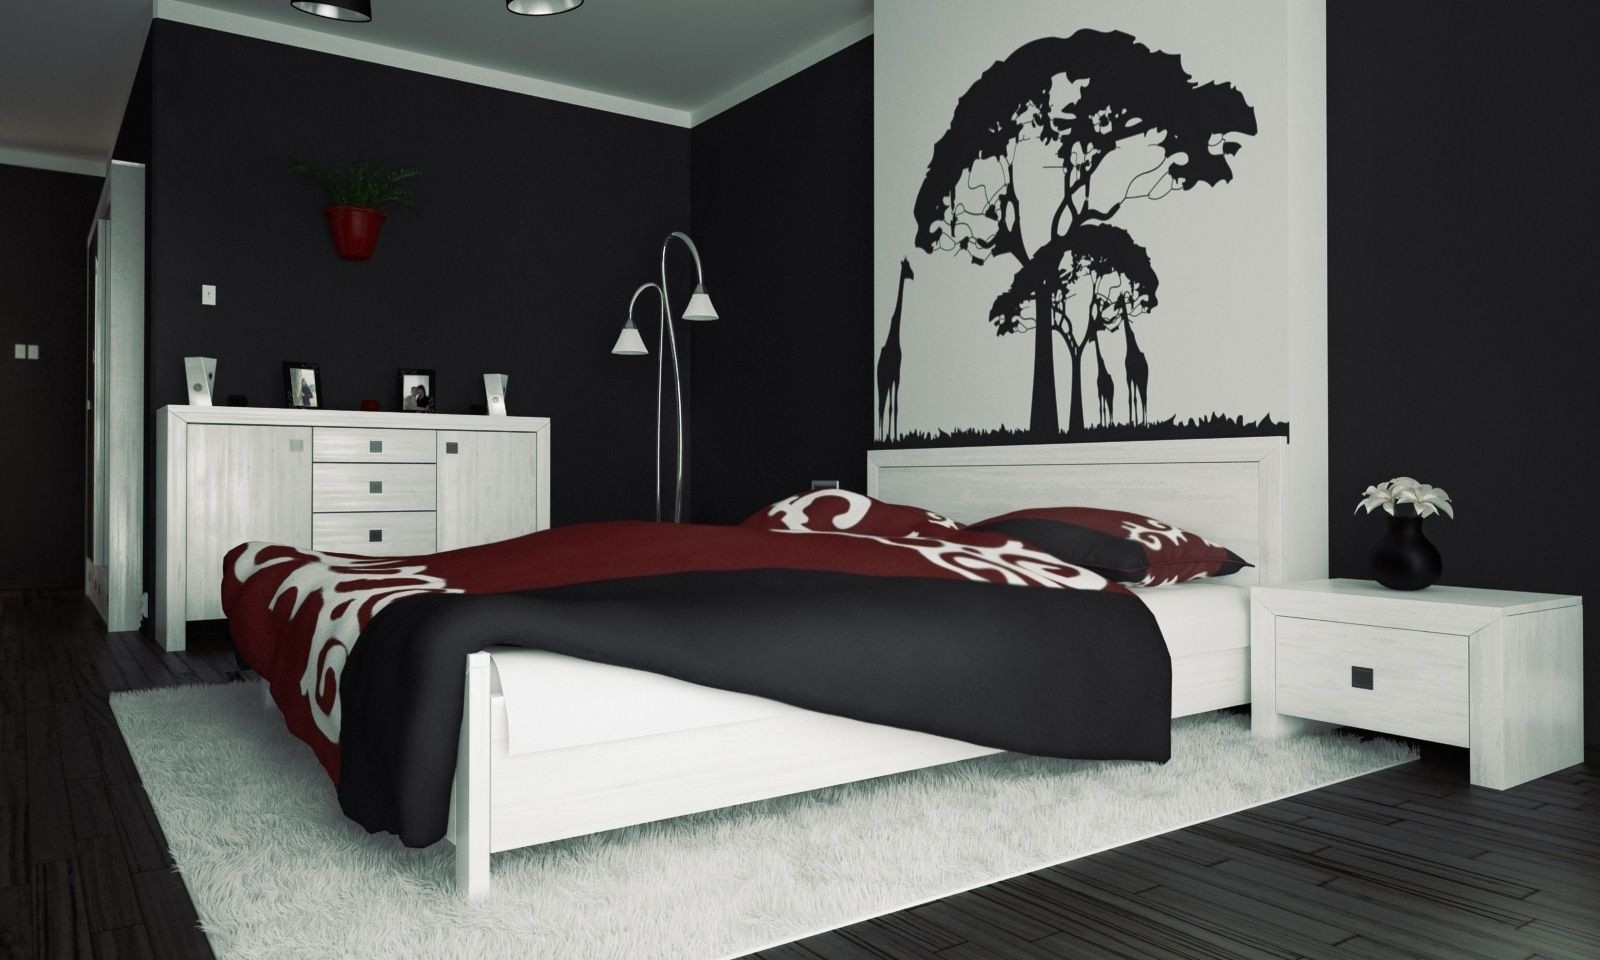 Top Top Bedroom Decor Ideas For Adults Resources 2020 @house2homegoods.net